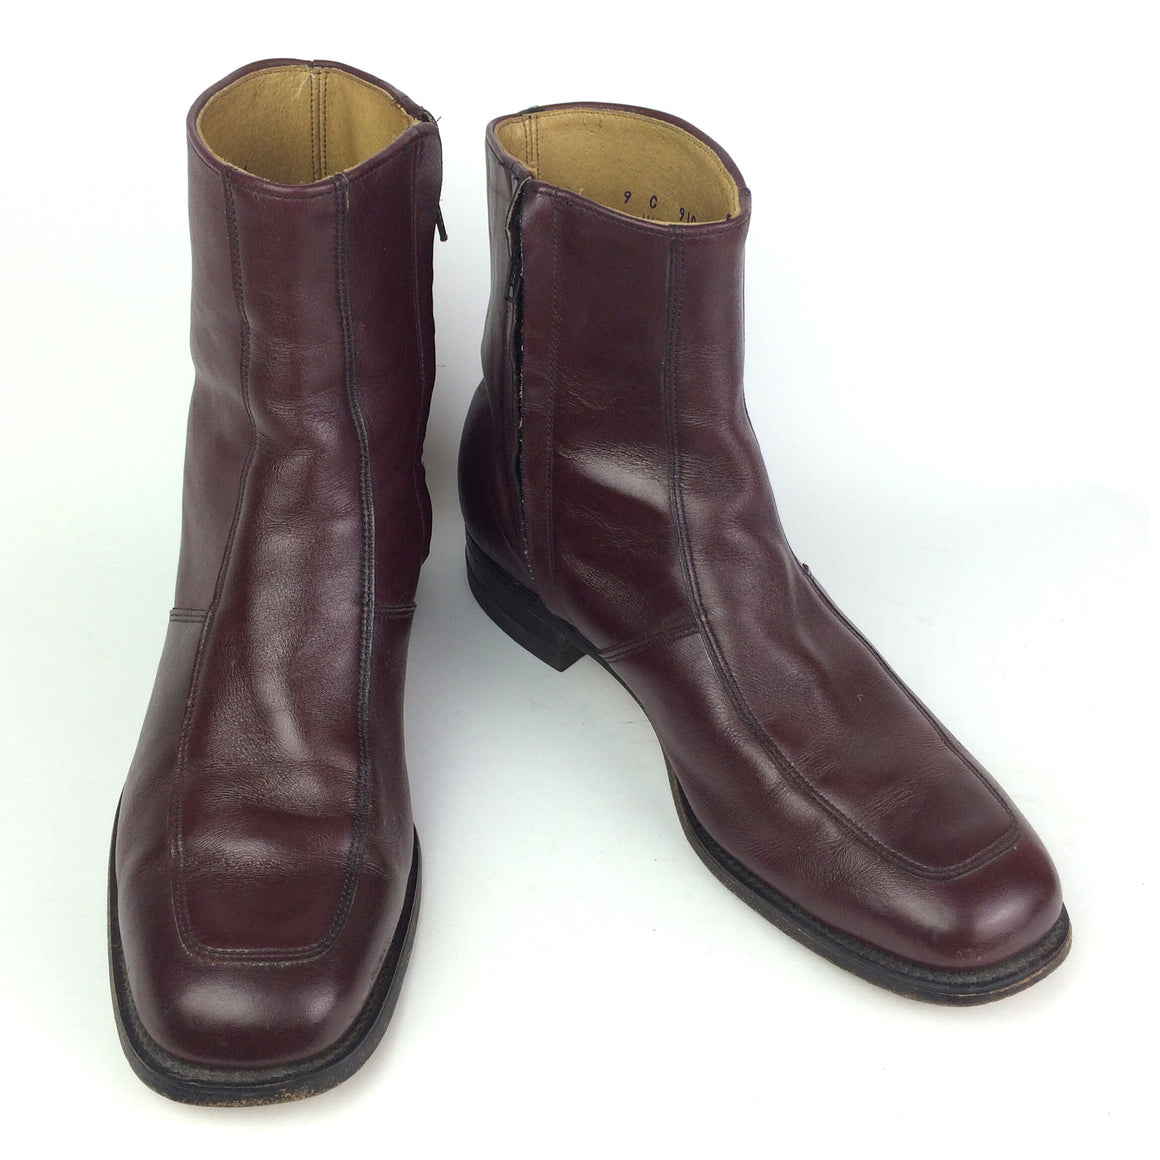 Vintage Burgundy O'Sullivan Executive Imperials Zip-Up Motorcycle Boots UK 8-8.5 / EUR 42 / US 9 C